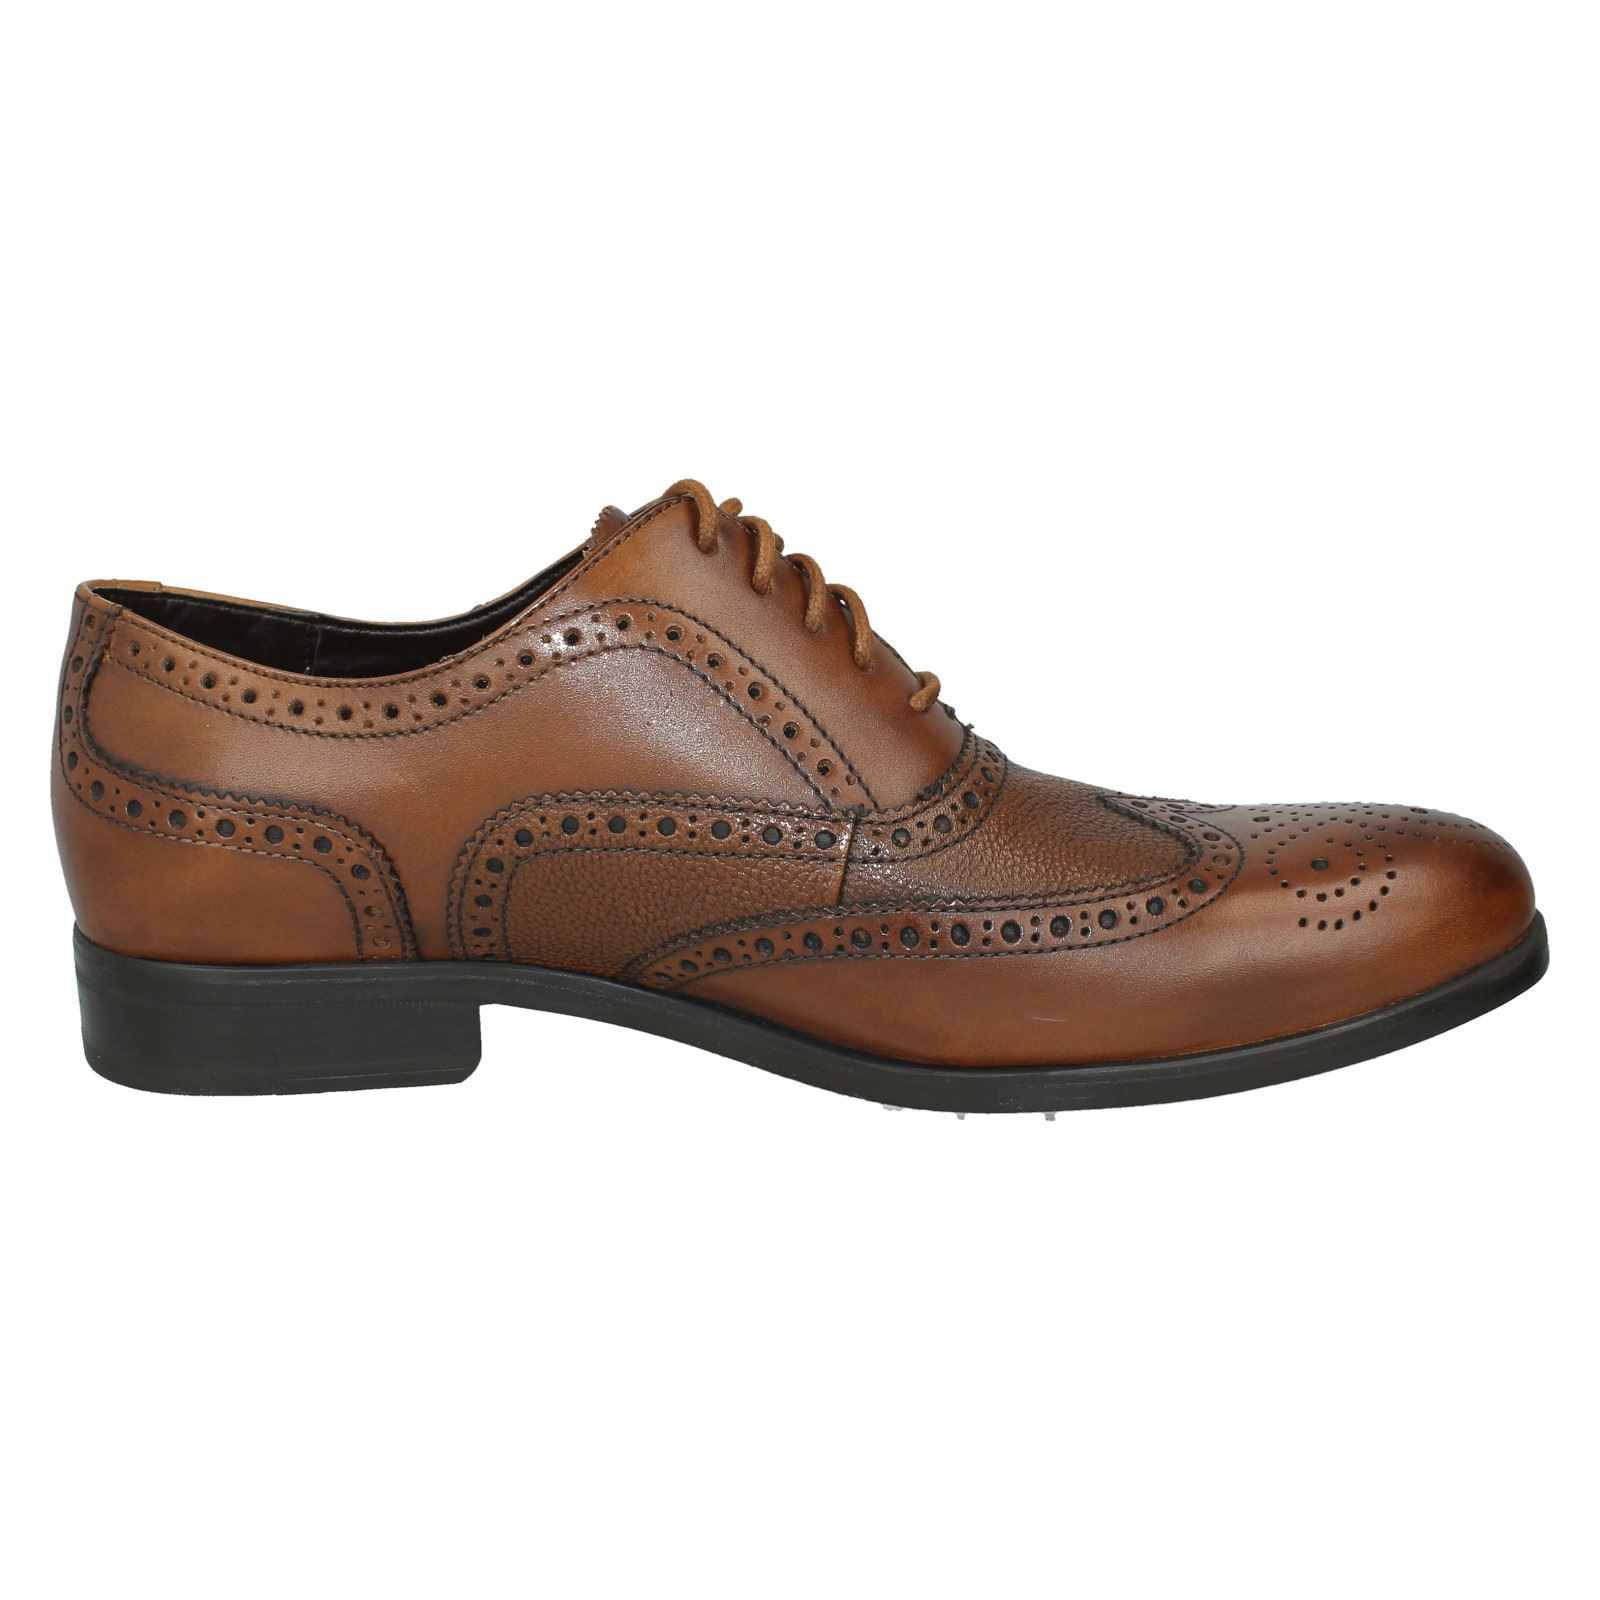 Men's Clarks Brogues Lace Up Formal  Shoes Style - Gilmore Limit